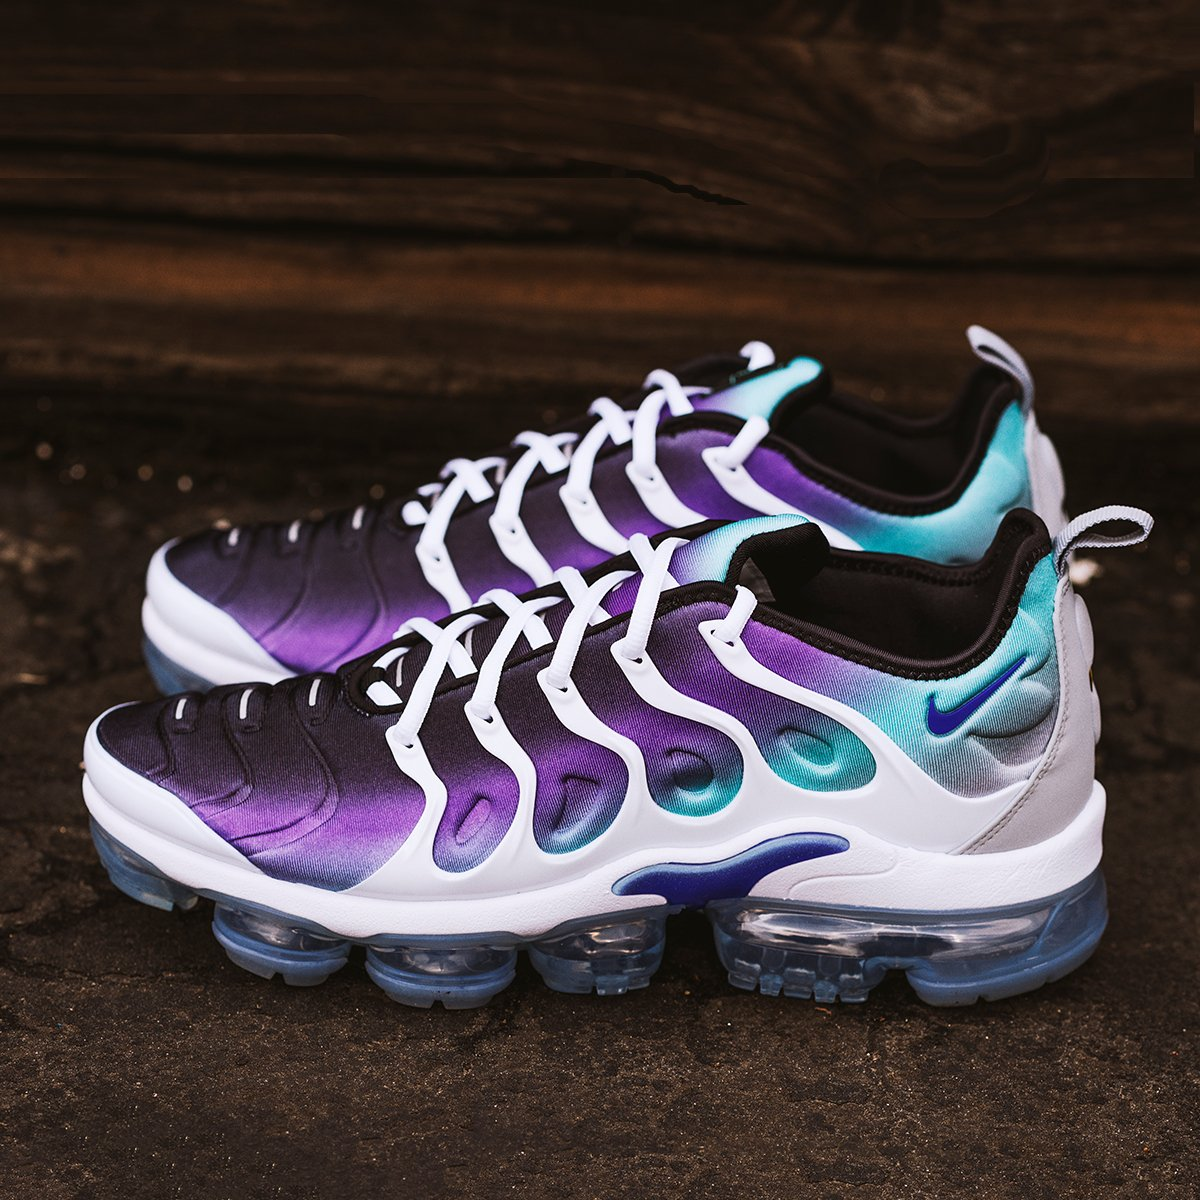 ... promo code for vapormax plus jimmy jazz 221c8 b9138 a8228413372d